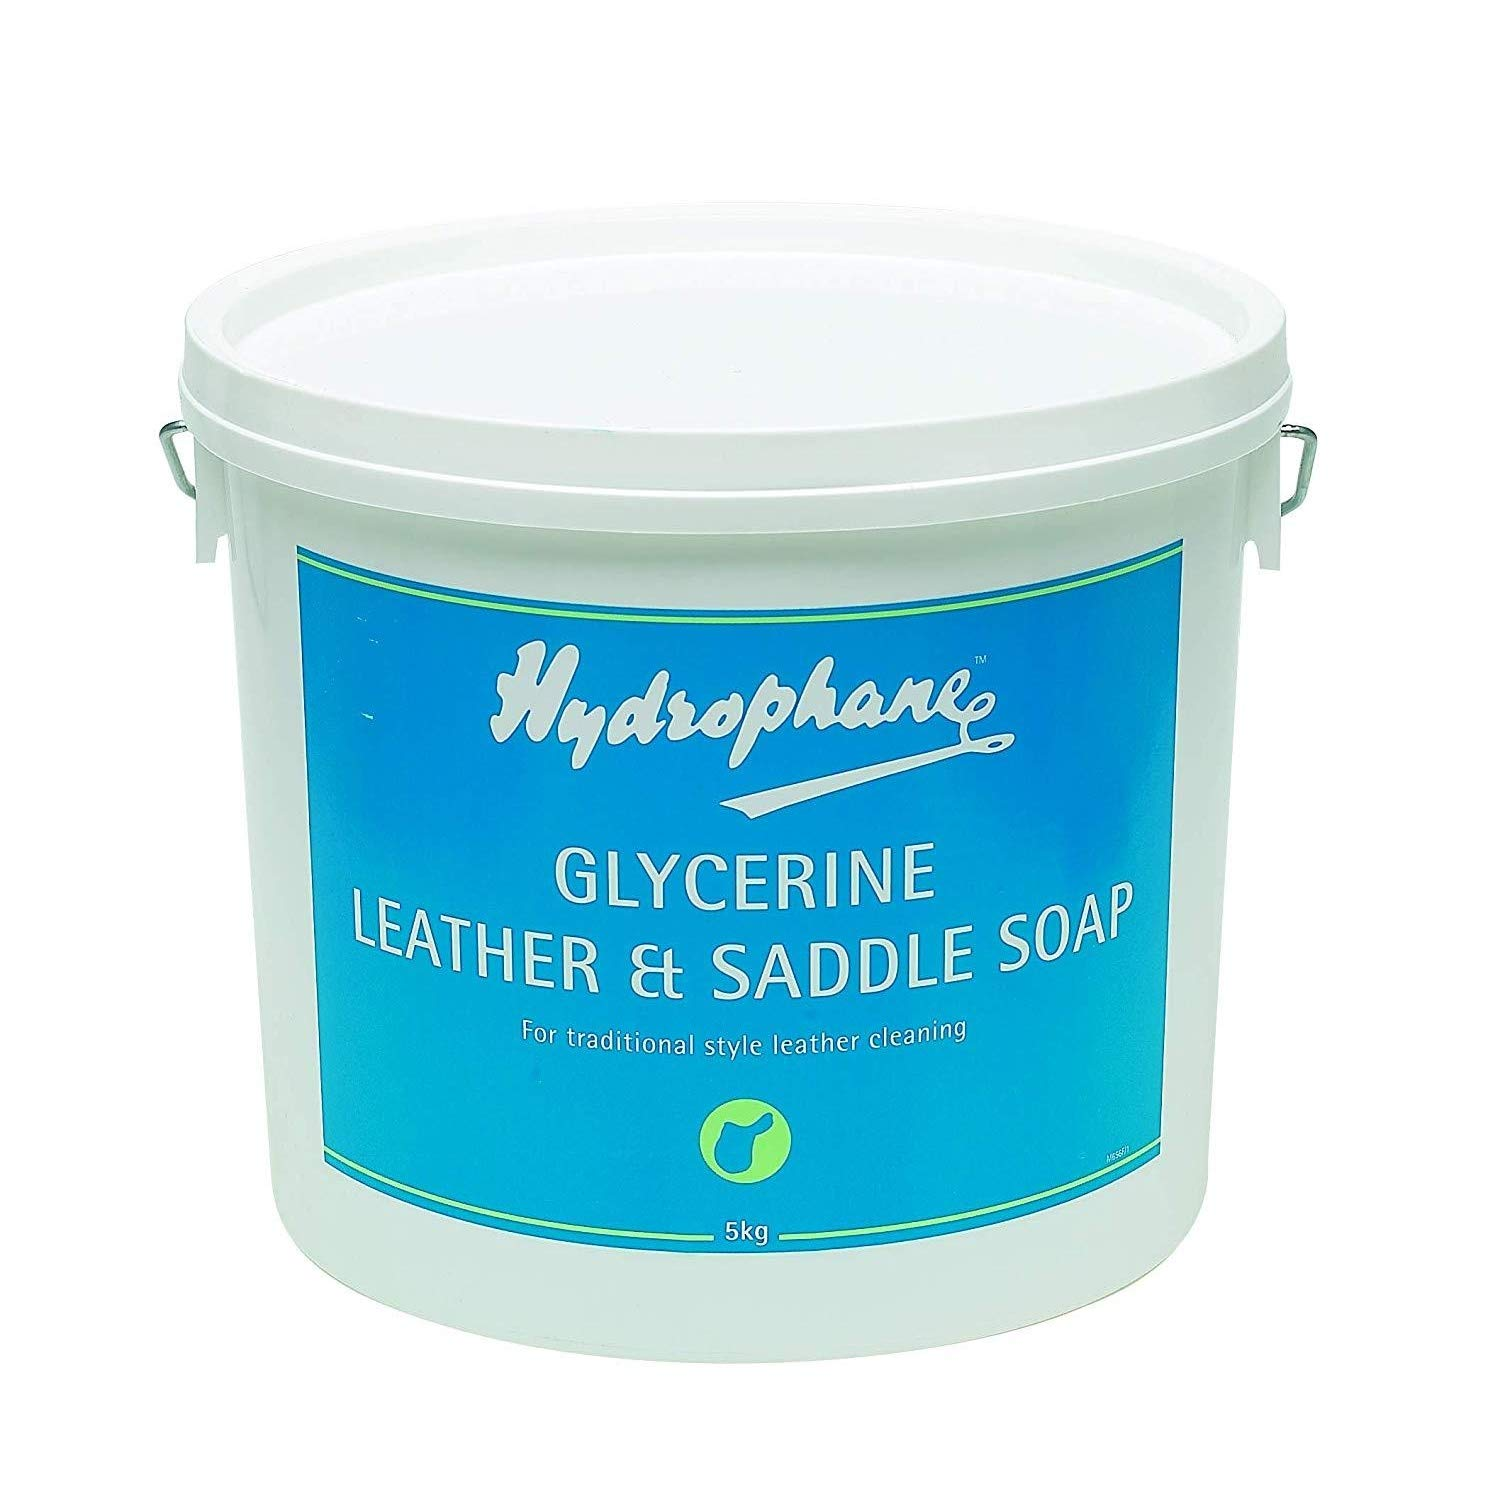 Hydrophane Glycerine Leather And Saddle Soap (9oz) (May Vary)